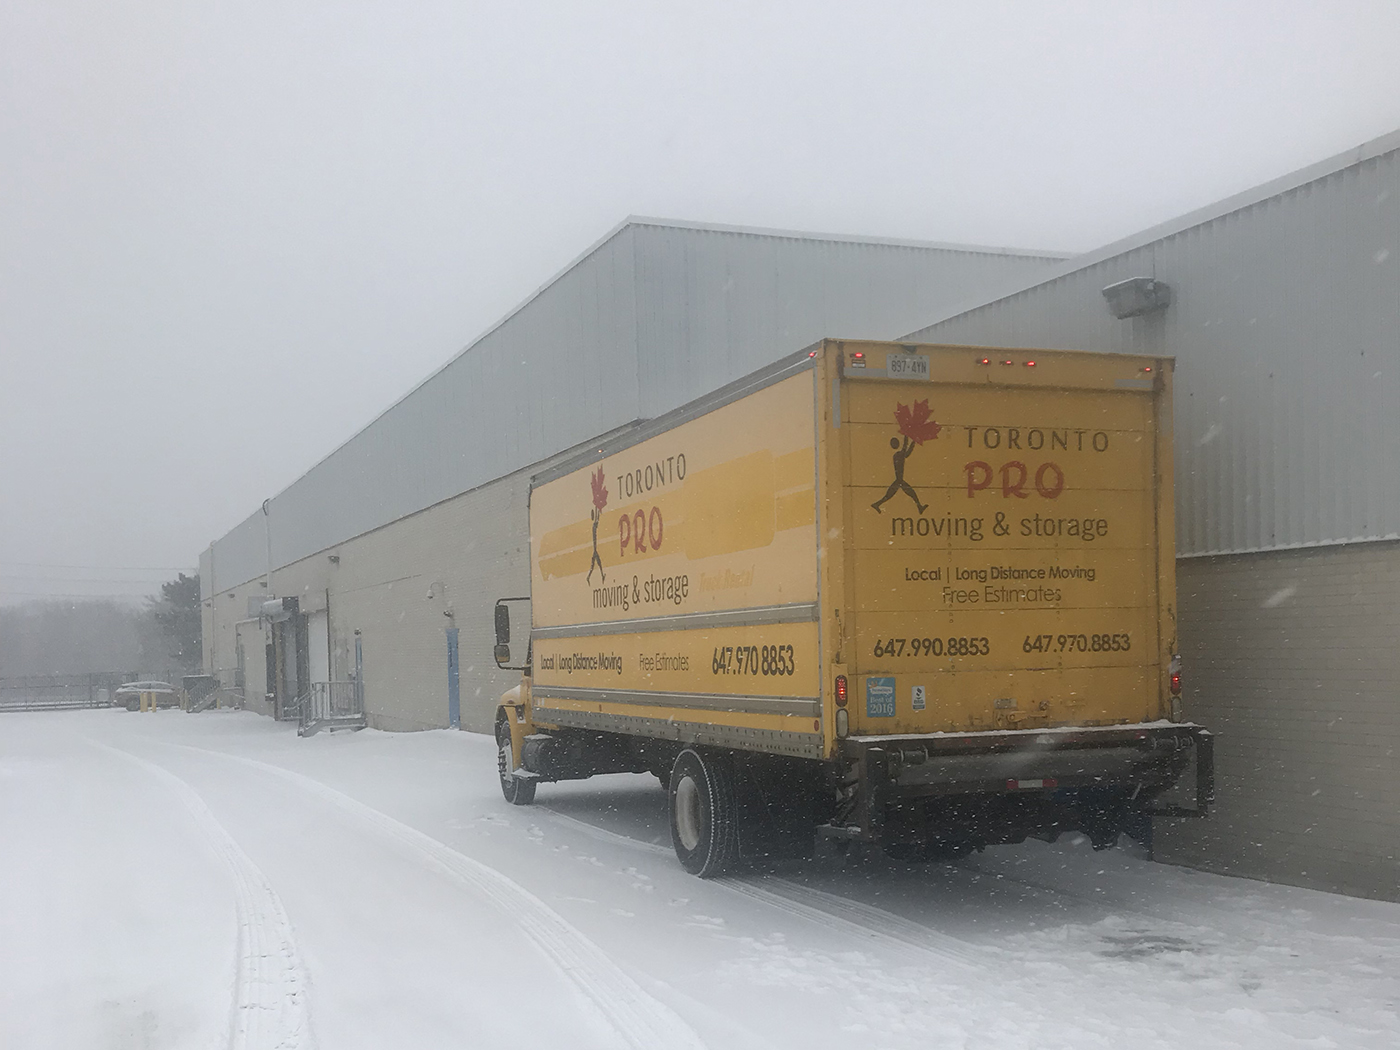 Moving Company Toronto Waiting for Adventure in Snow